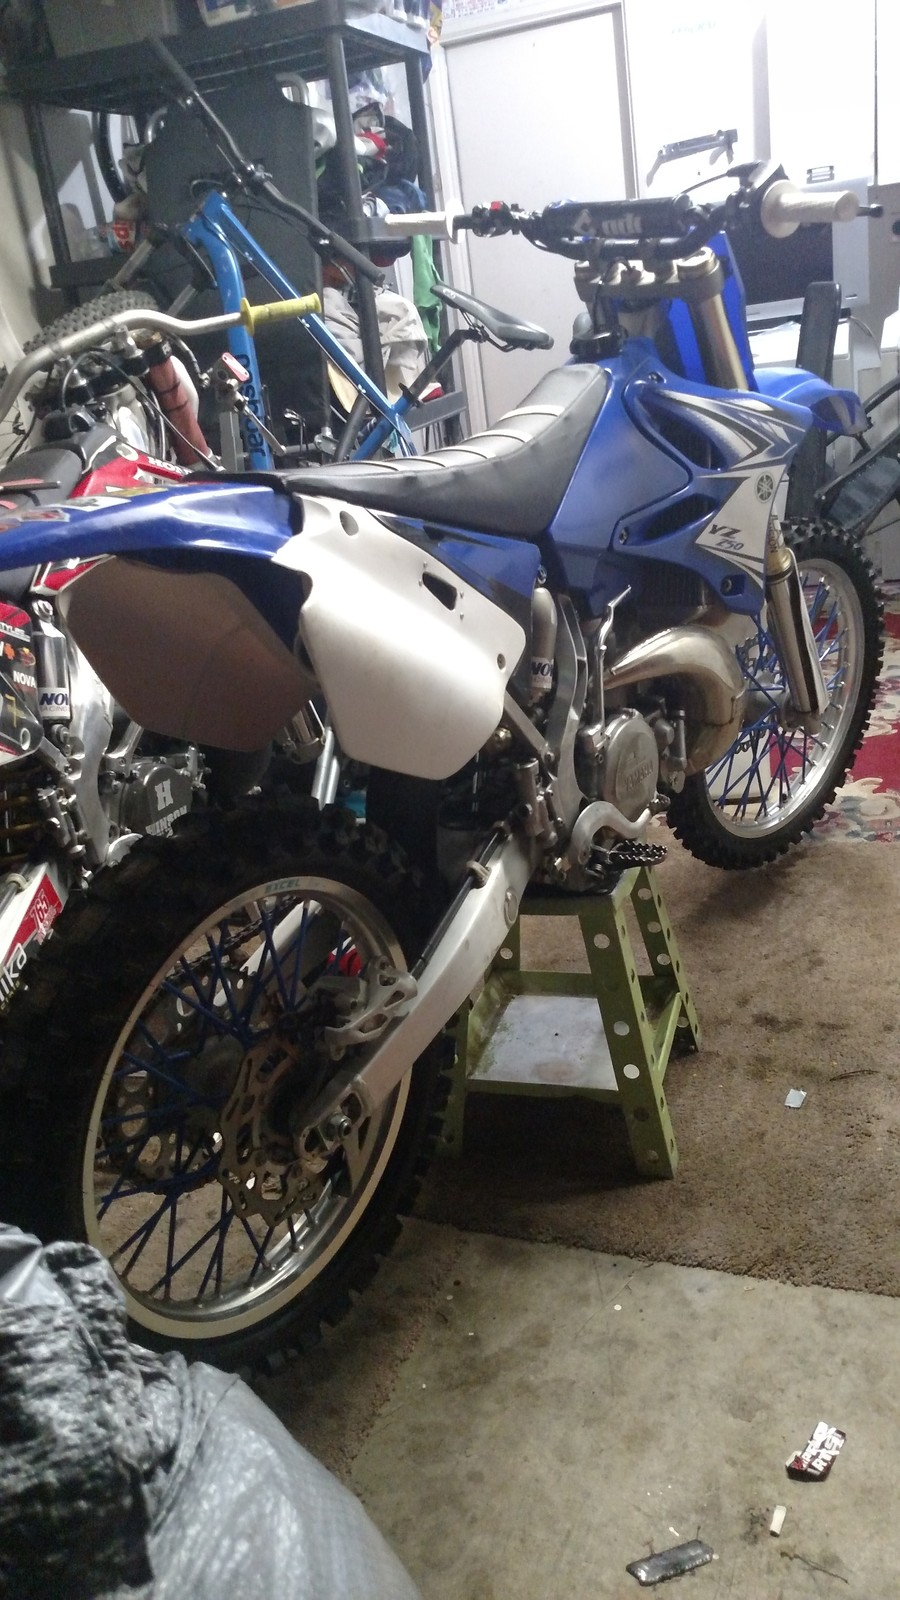 This bike has been in development for years and after finally getting it close to amazing, my mechanic let me buy it dirt cheap. I know it looks like crap now but I'll fix that, we got so much air to flow to this motor it's running a 218 main jet, stock is 175-78. Hopefully the build with cosmetic stuff comes along good and if you see me just ask I'll probably let let u ride it.